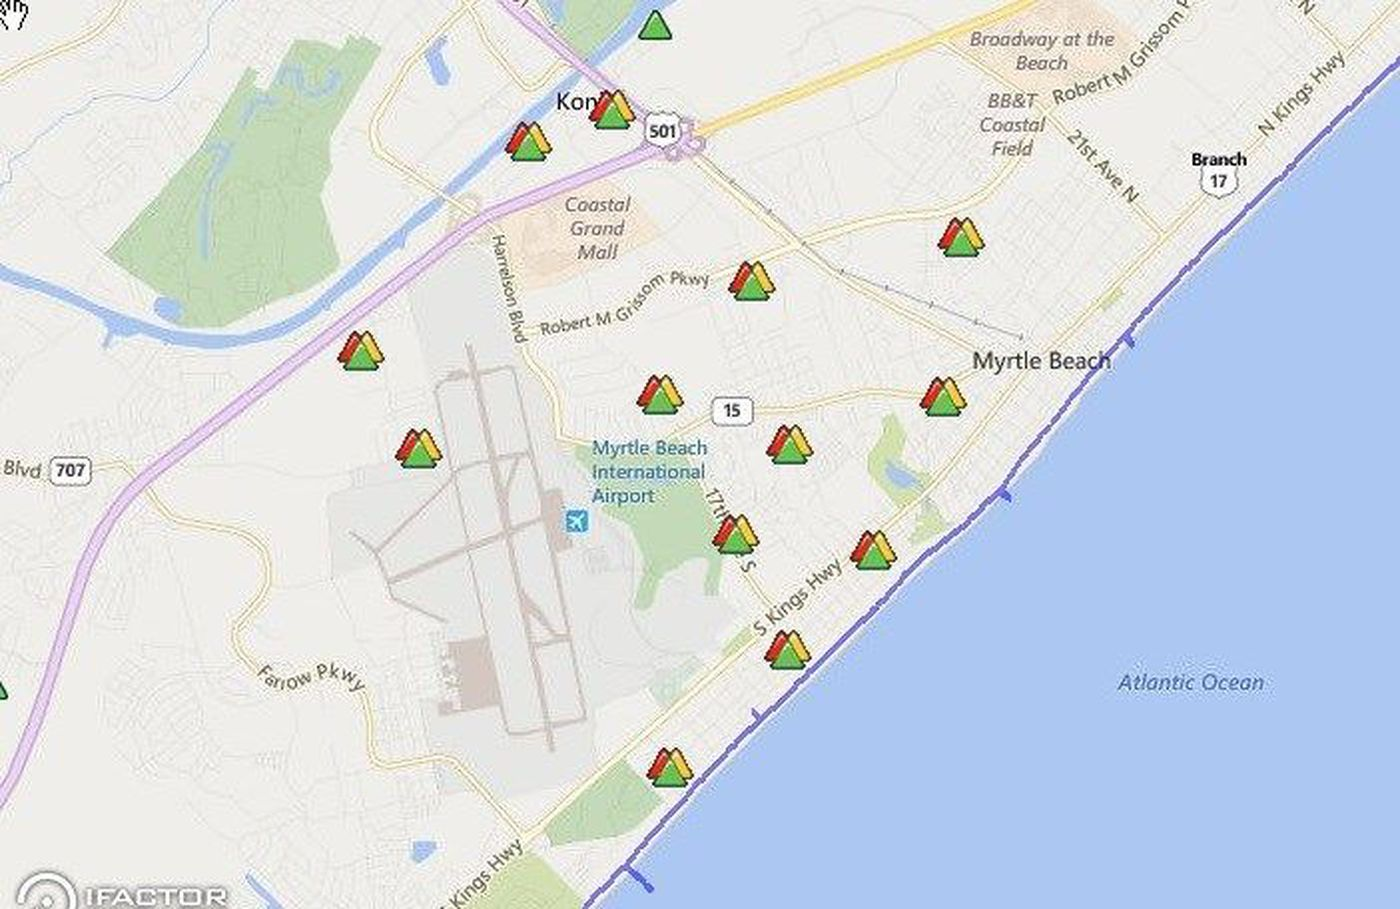 Santee Cooper: power has been restored to Myrtle Beach areas